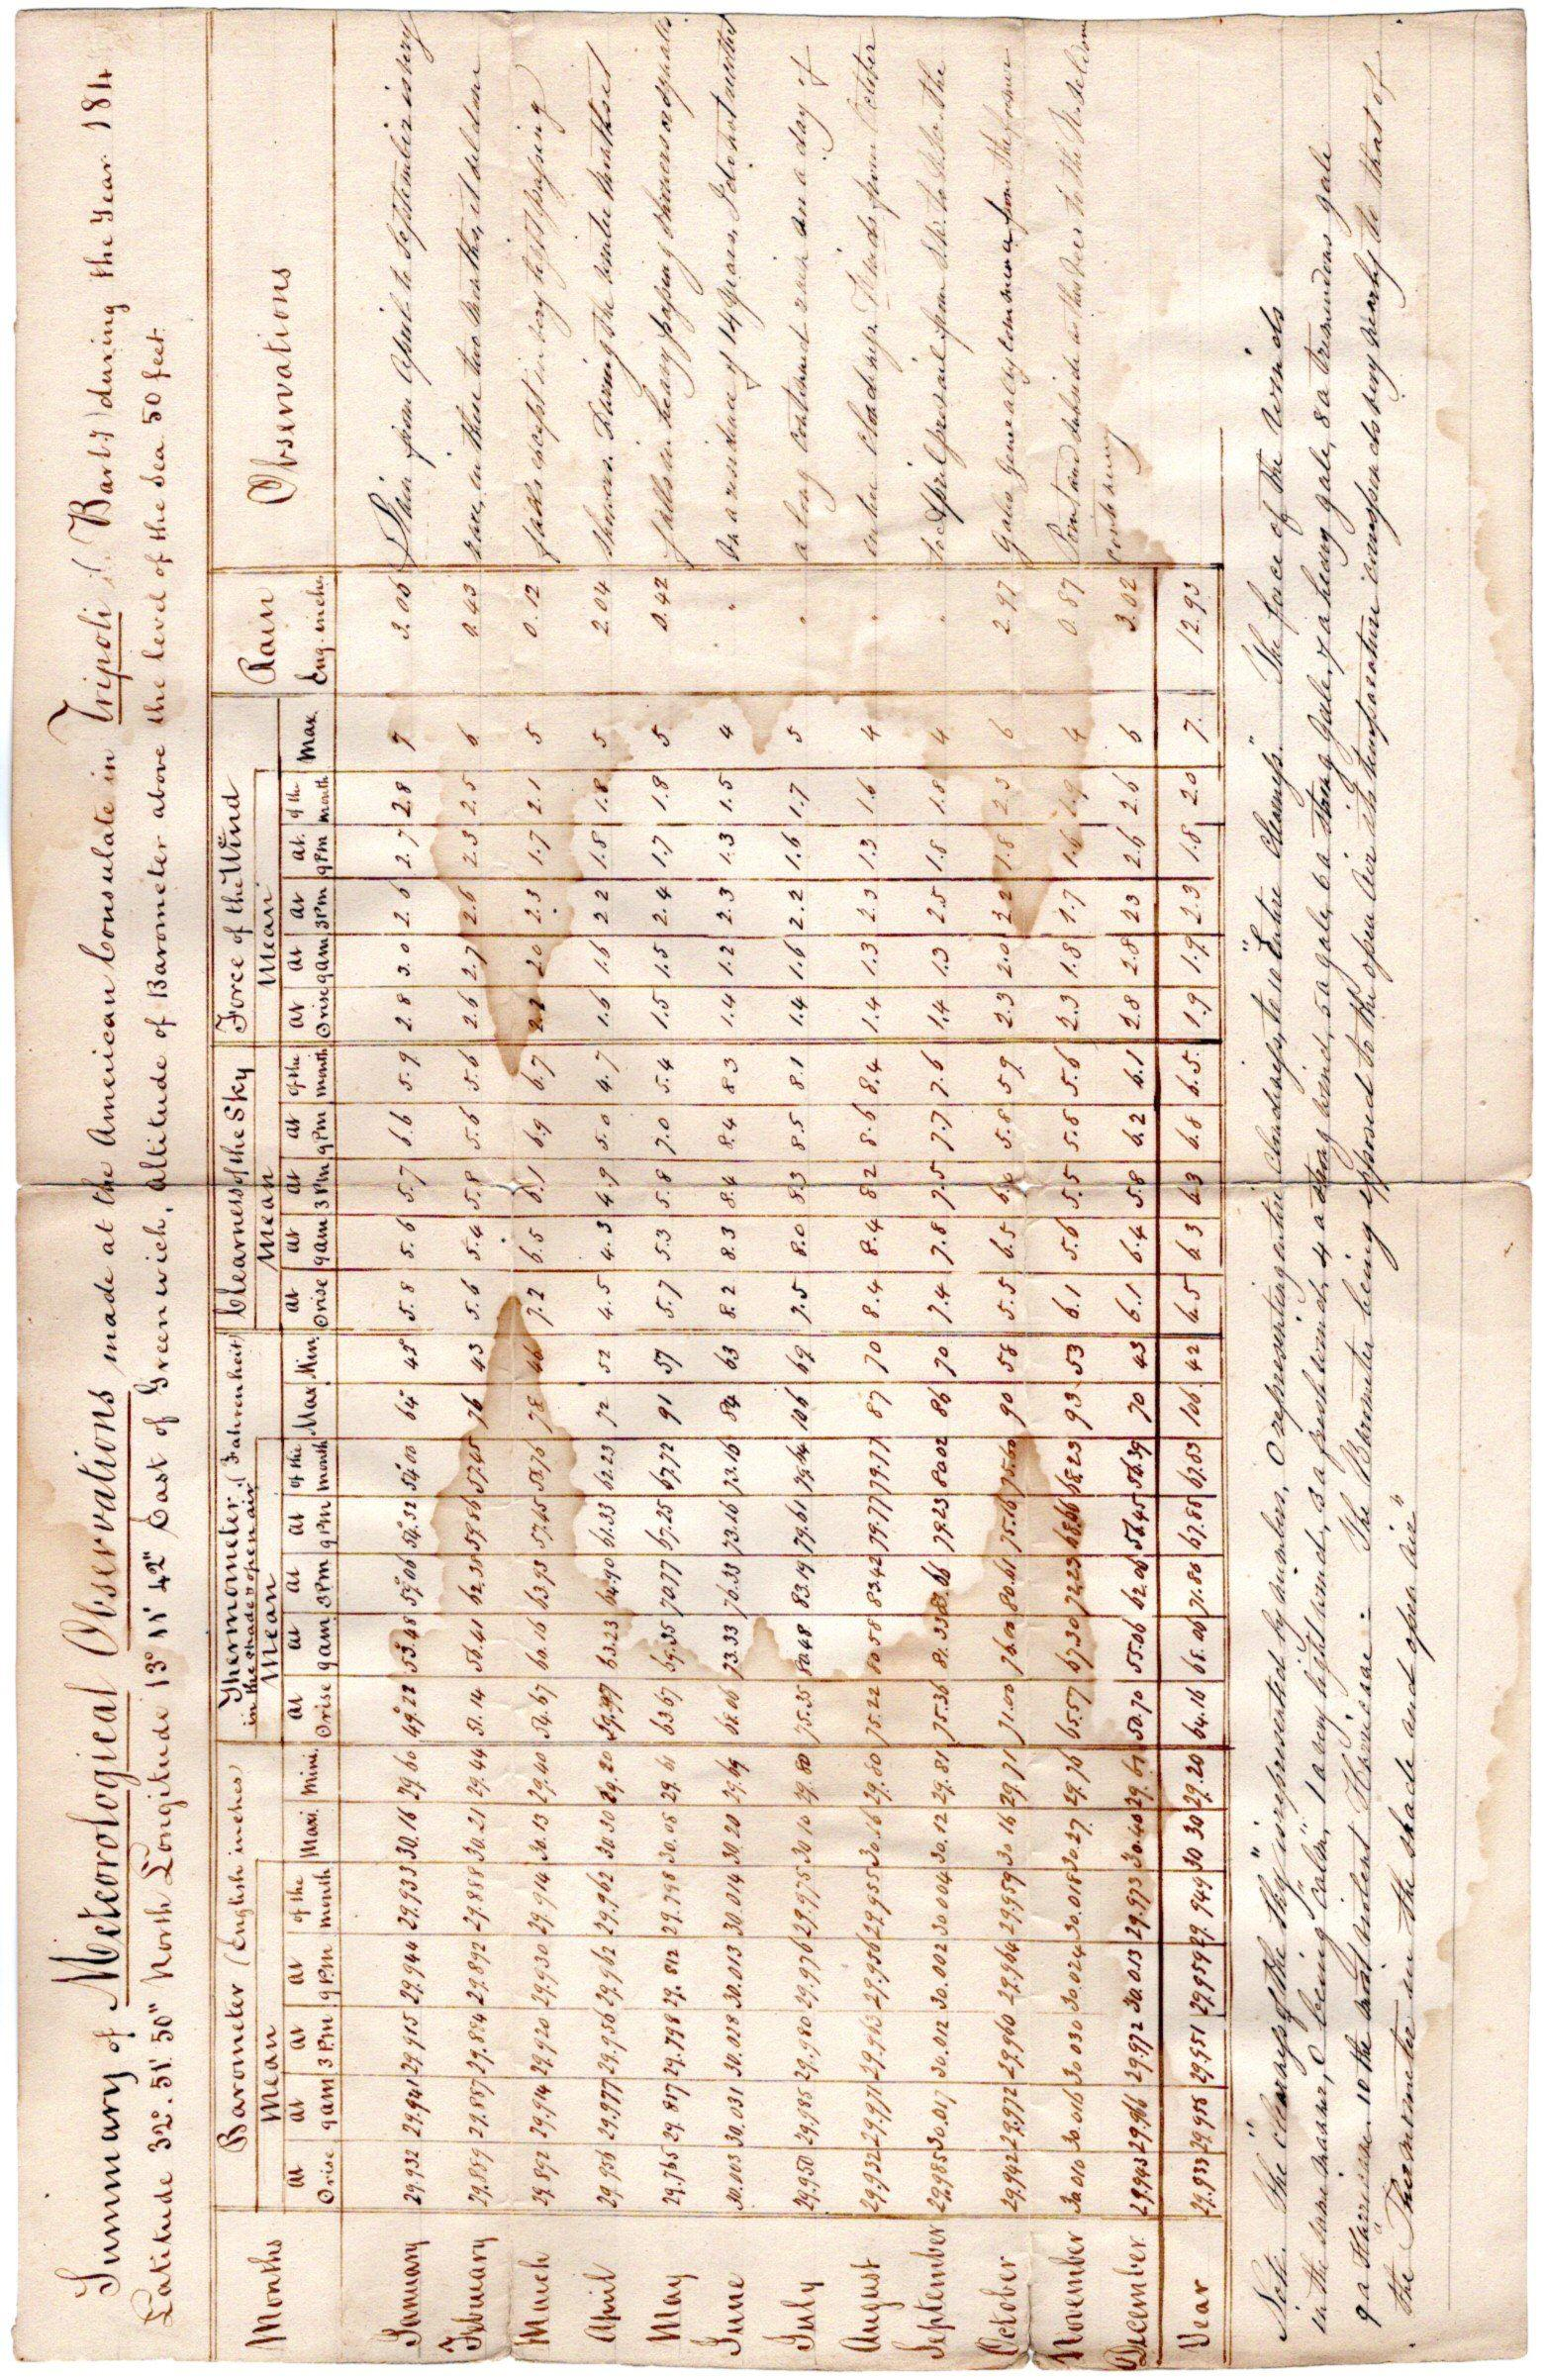 U.S. Consul in Tripoli Records Meteorological Observations in 1844